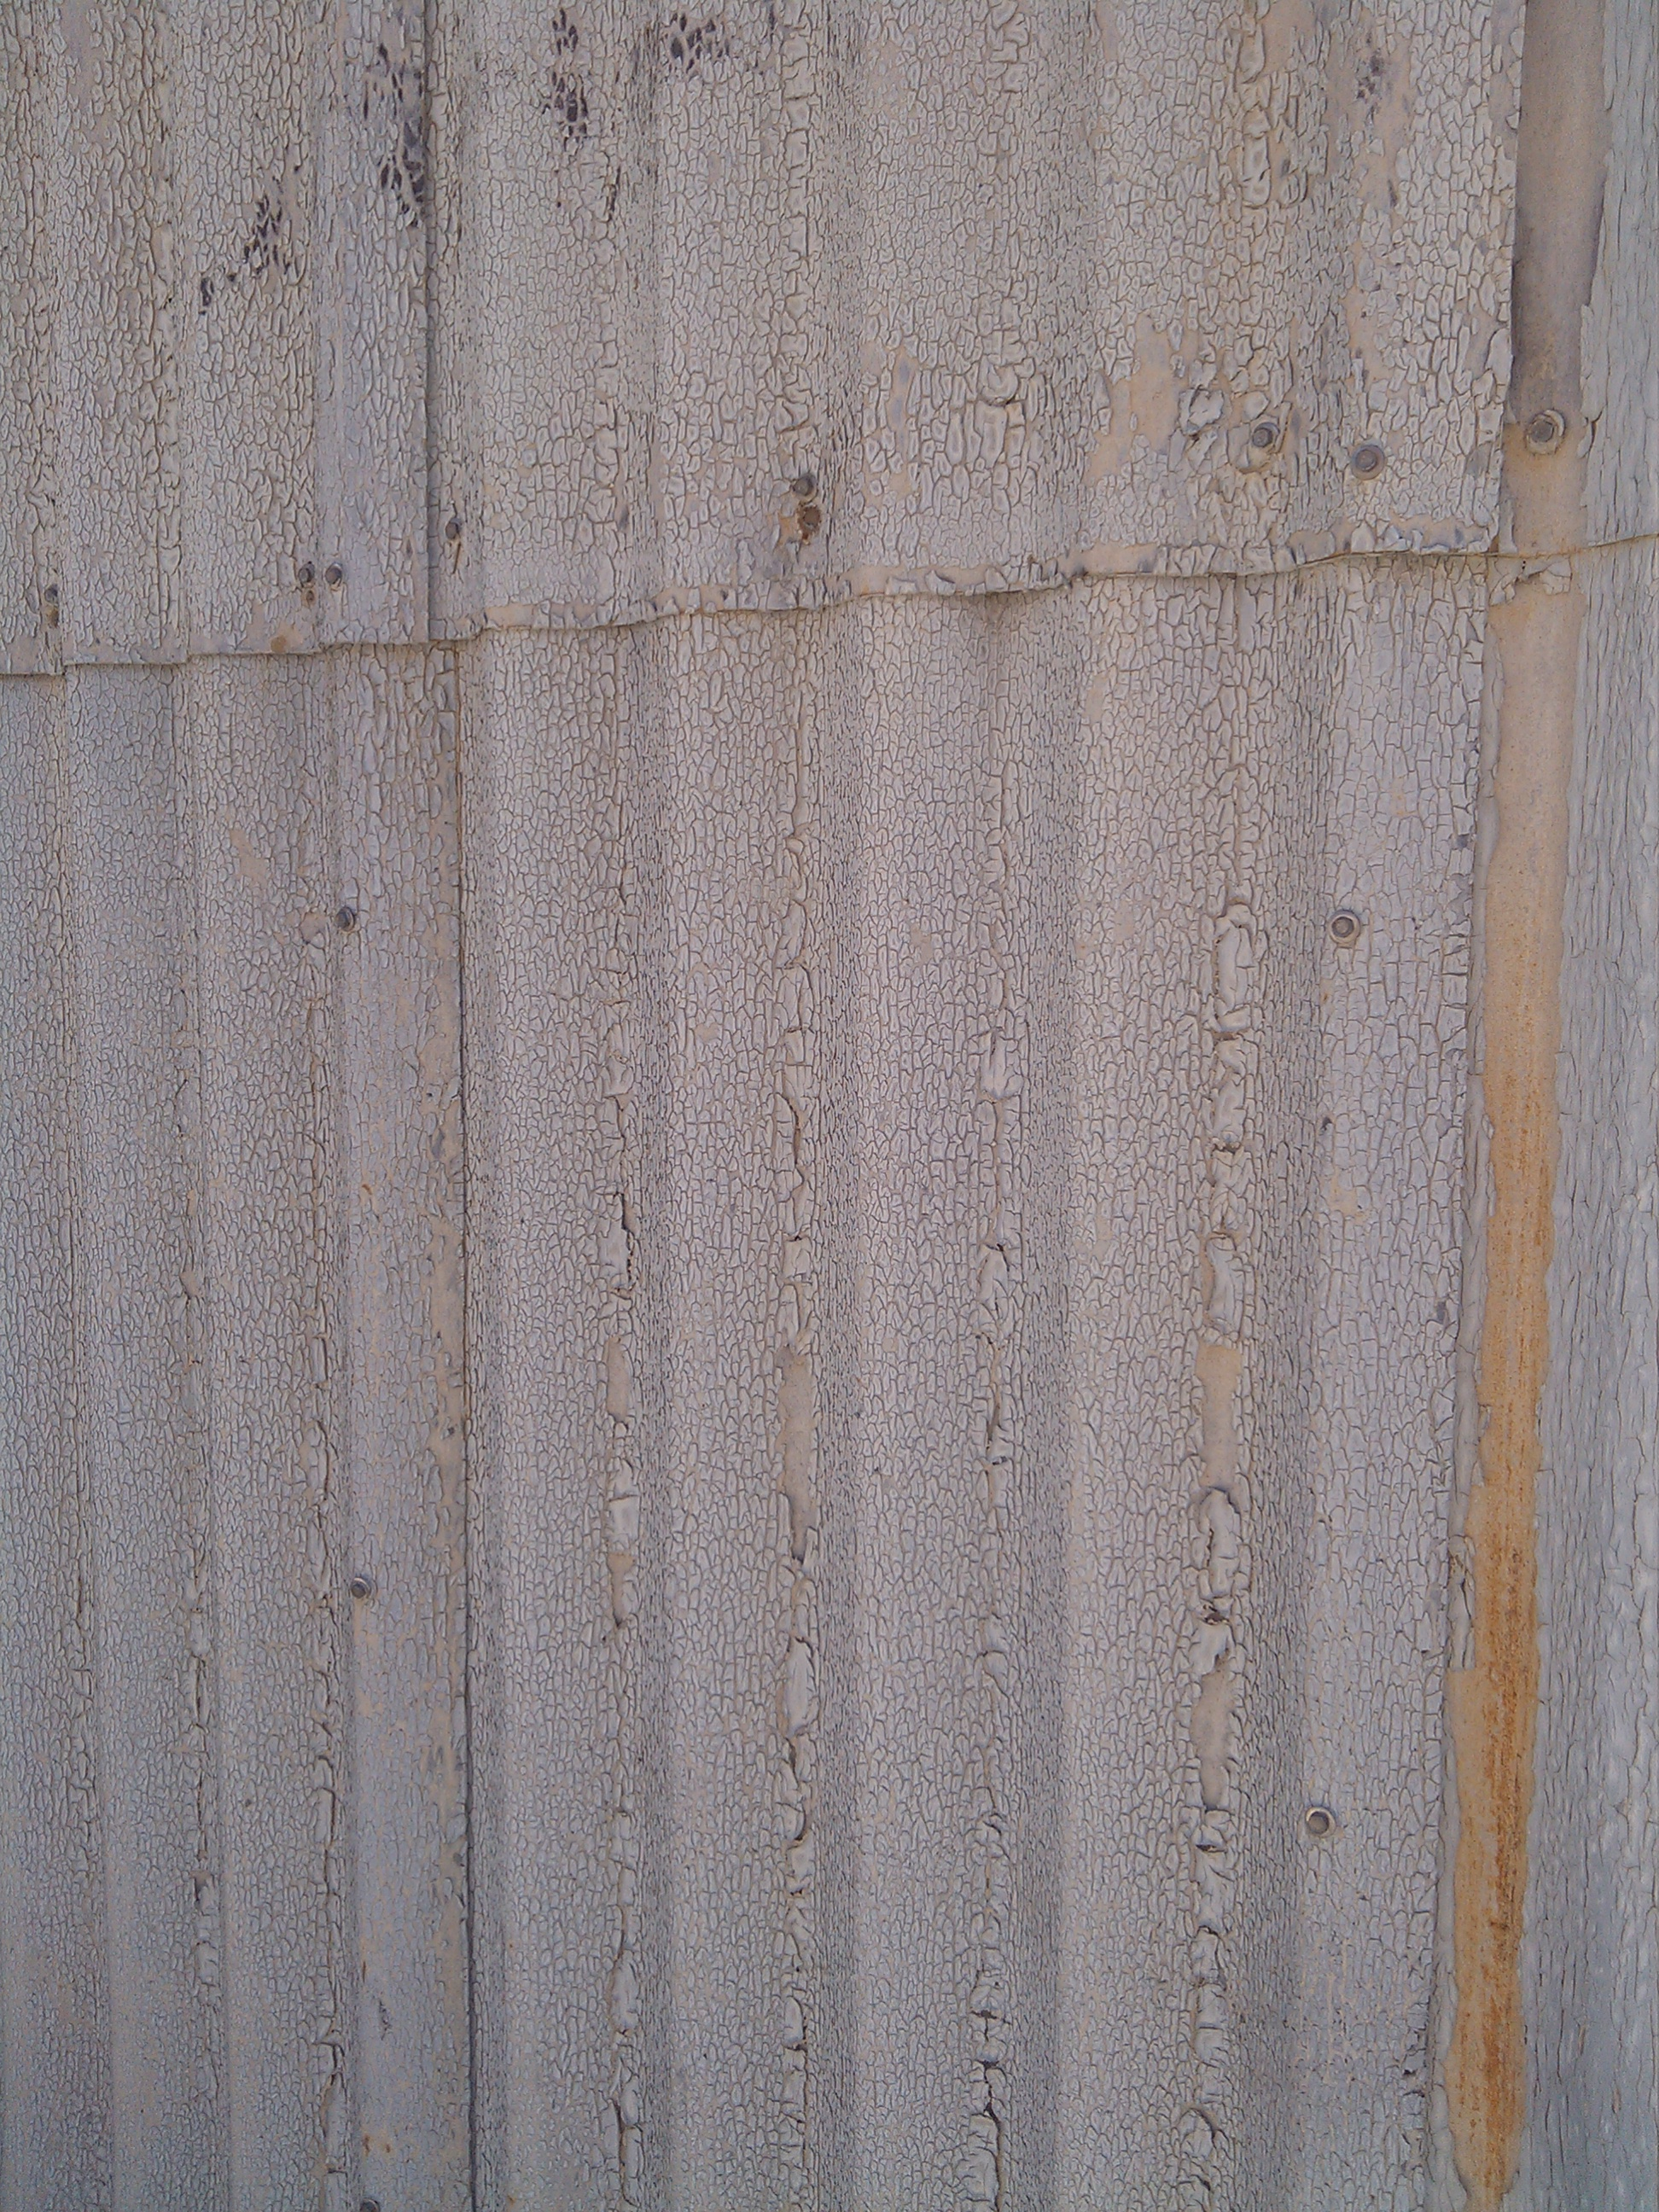 /img/Asbestos Siding Removal Lepi Enterprises Environmental Services